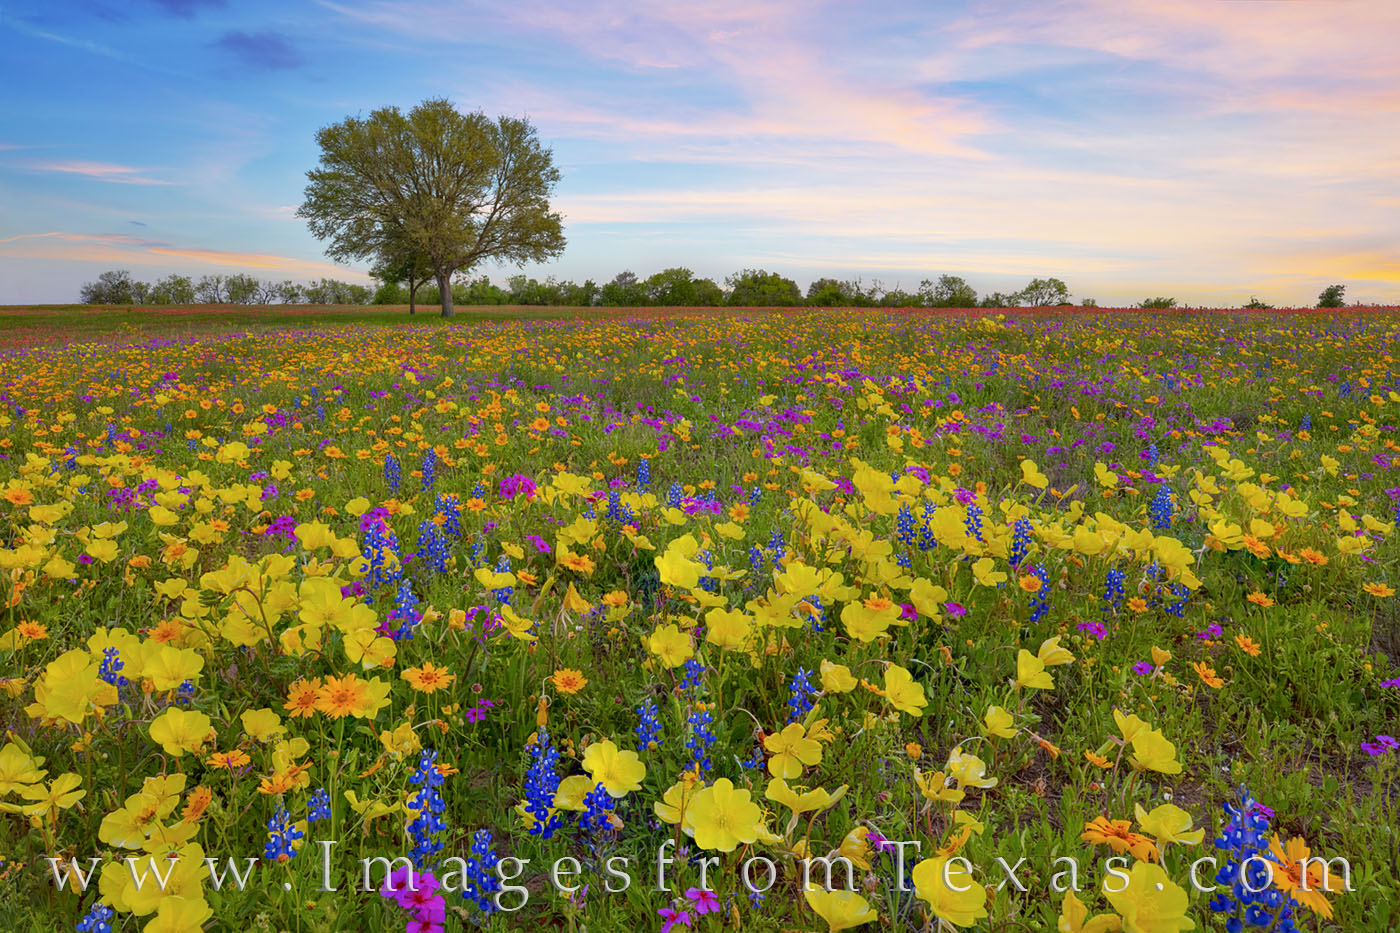 Wildflowers, Texas, bluebonnets, phlox, groundsel, coreopsis, Missouri primrose, primrose, buttercups, paintbrush, new berlin, church road, san Antonio, spring, march, photo